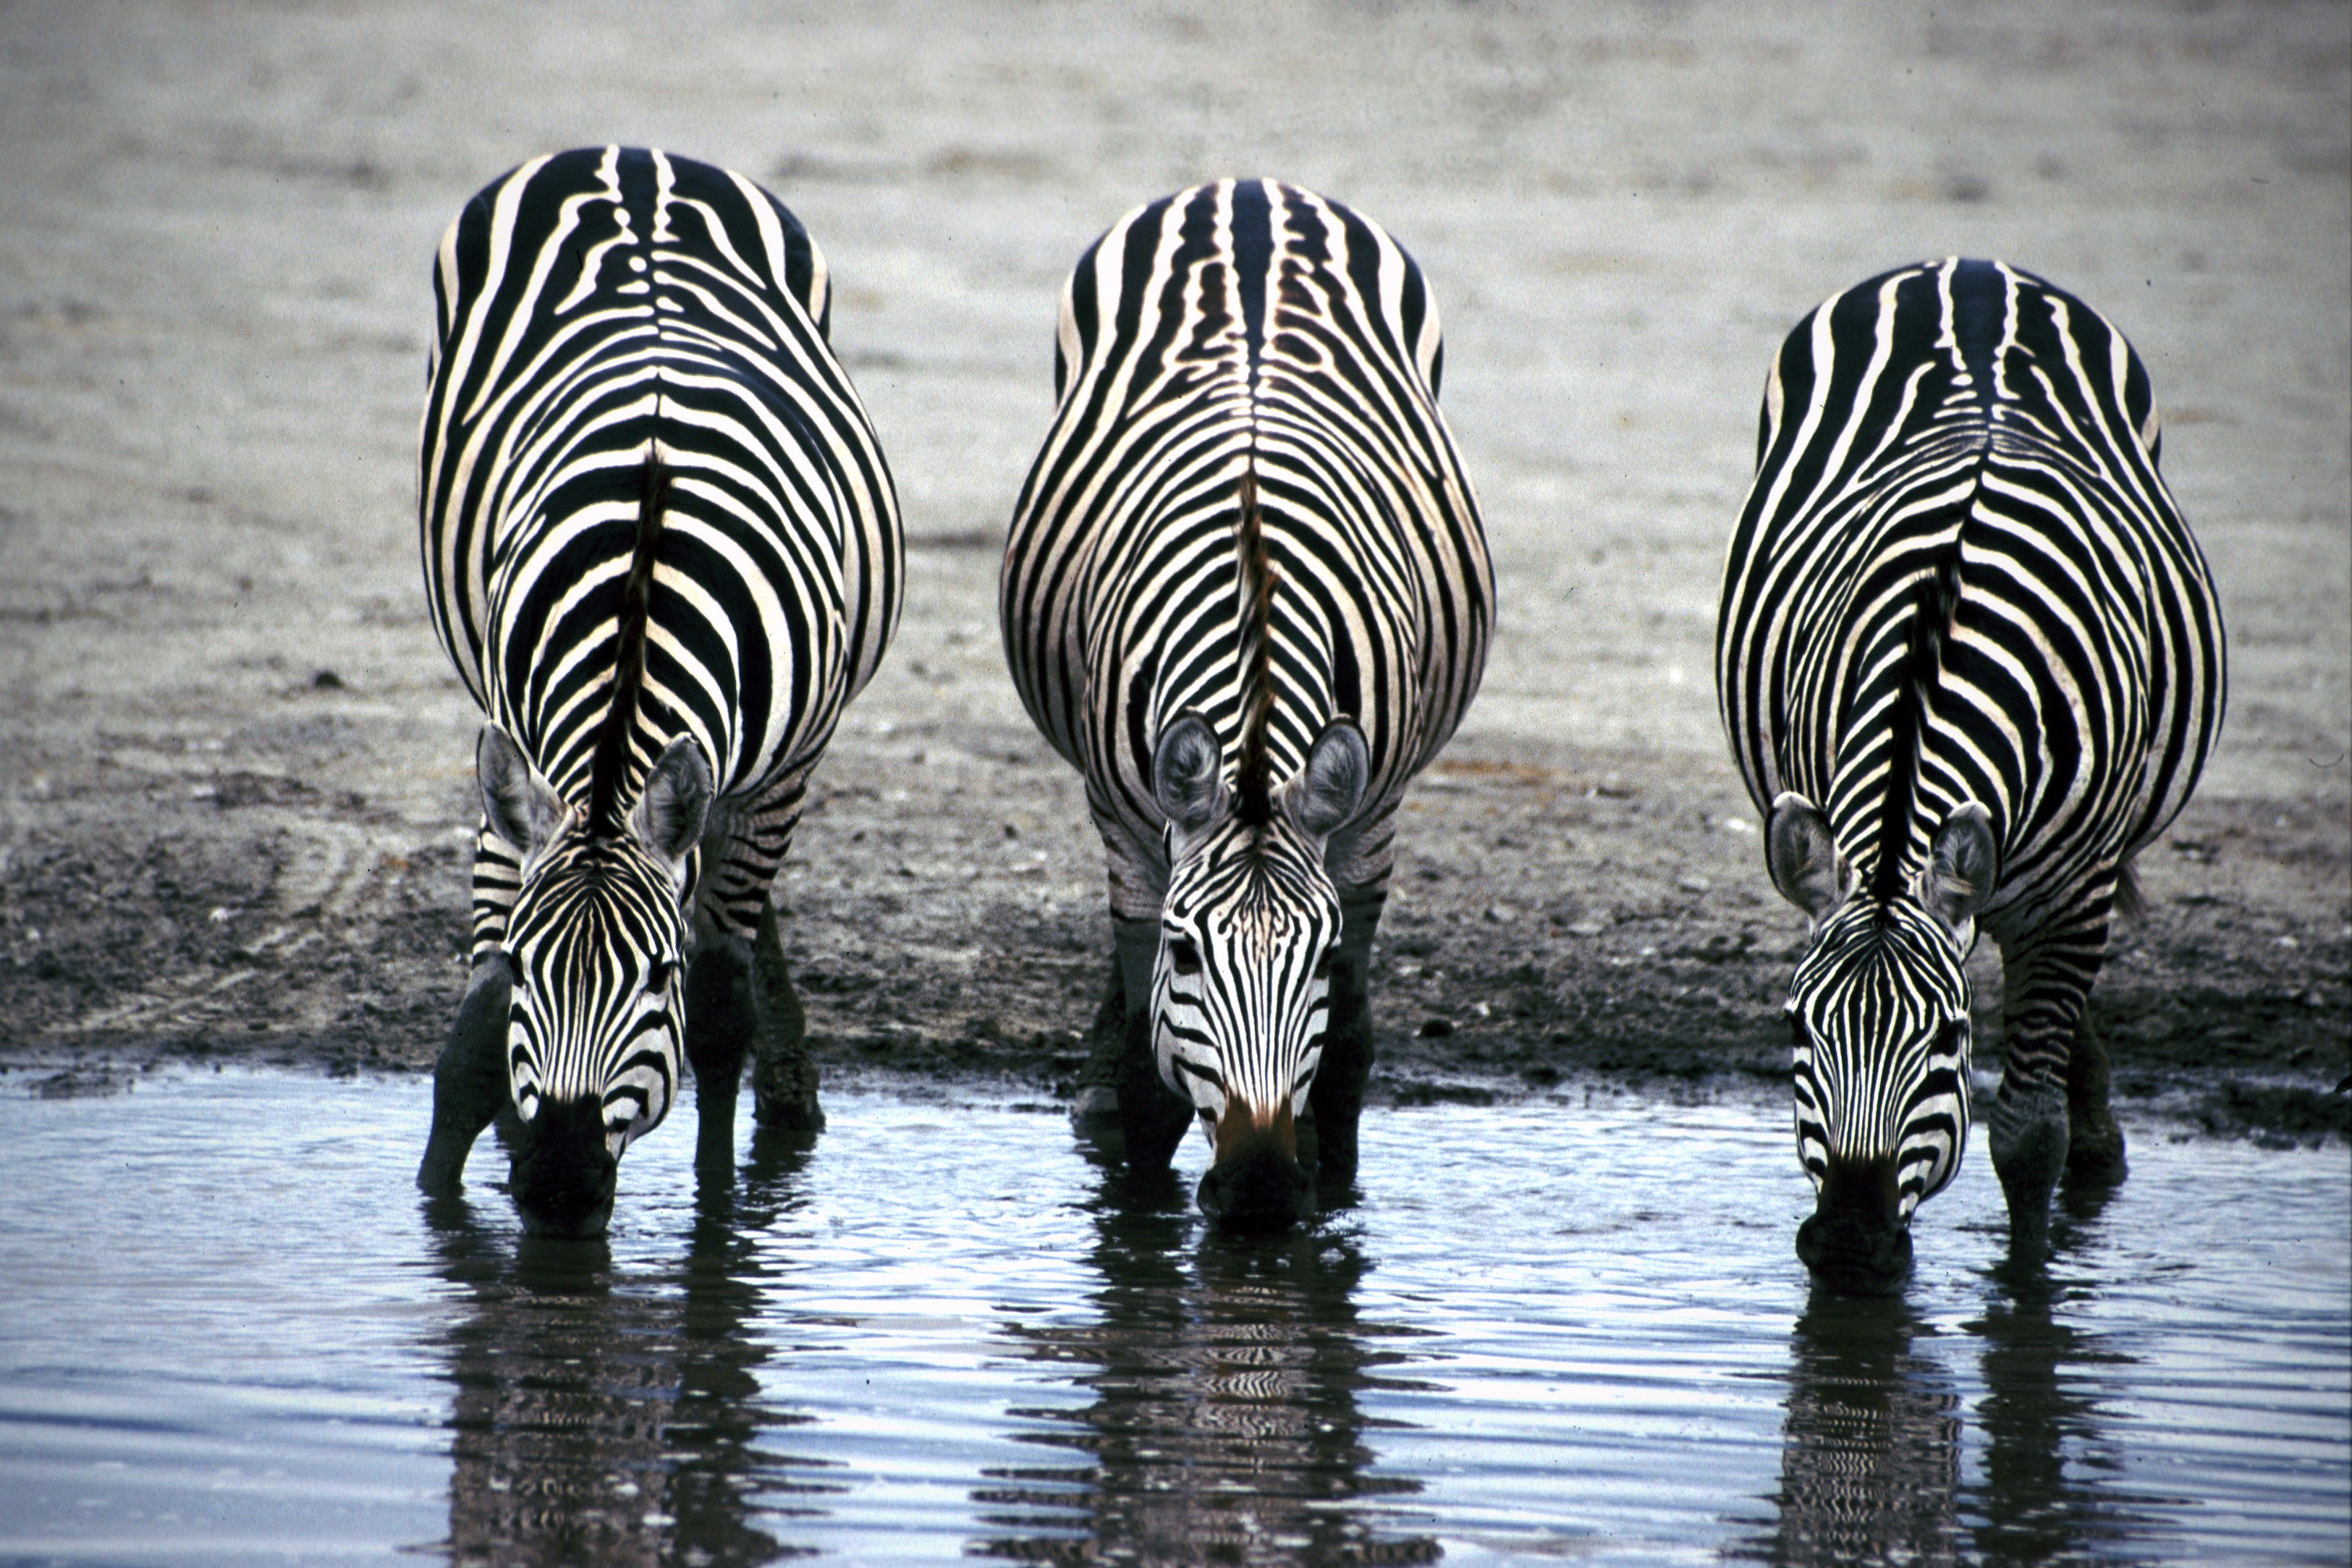 http://upload.wikimedia.org/wikipedia/commons/6/60/Three_Zebras_Drinking.jpg